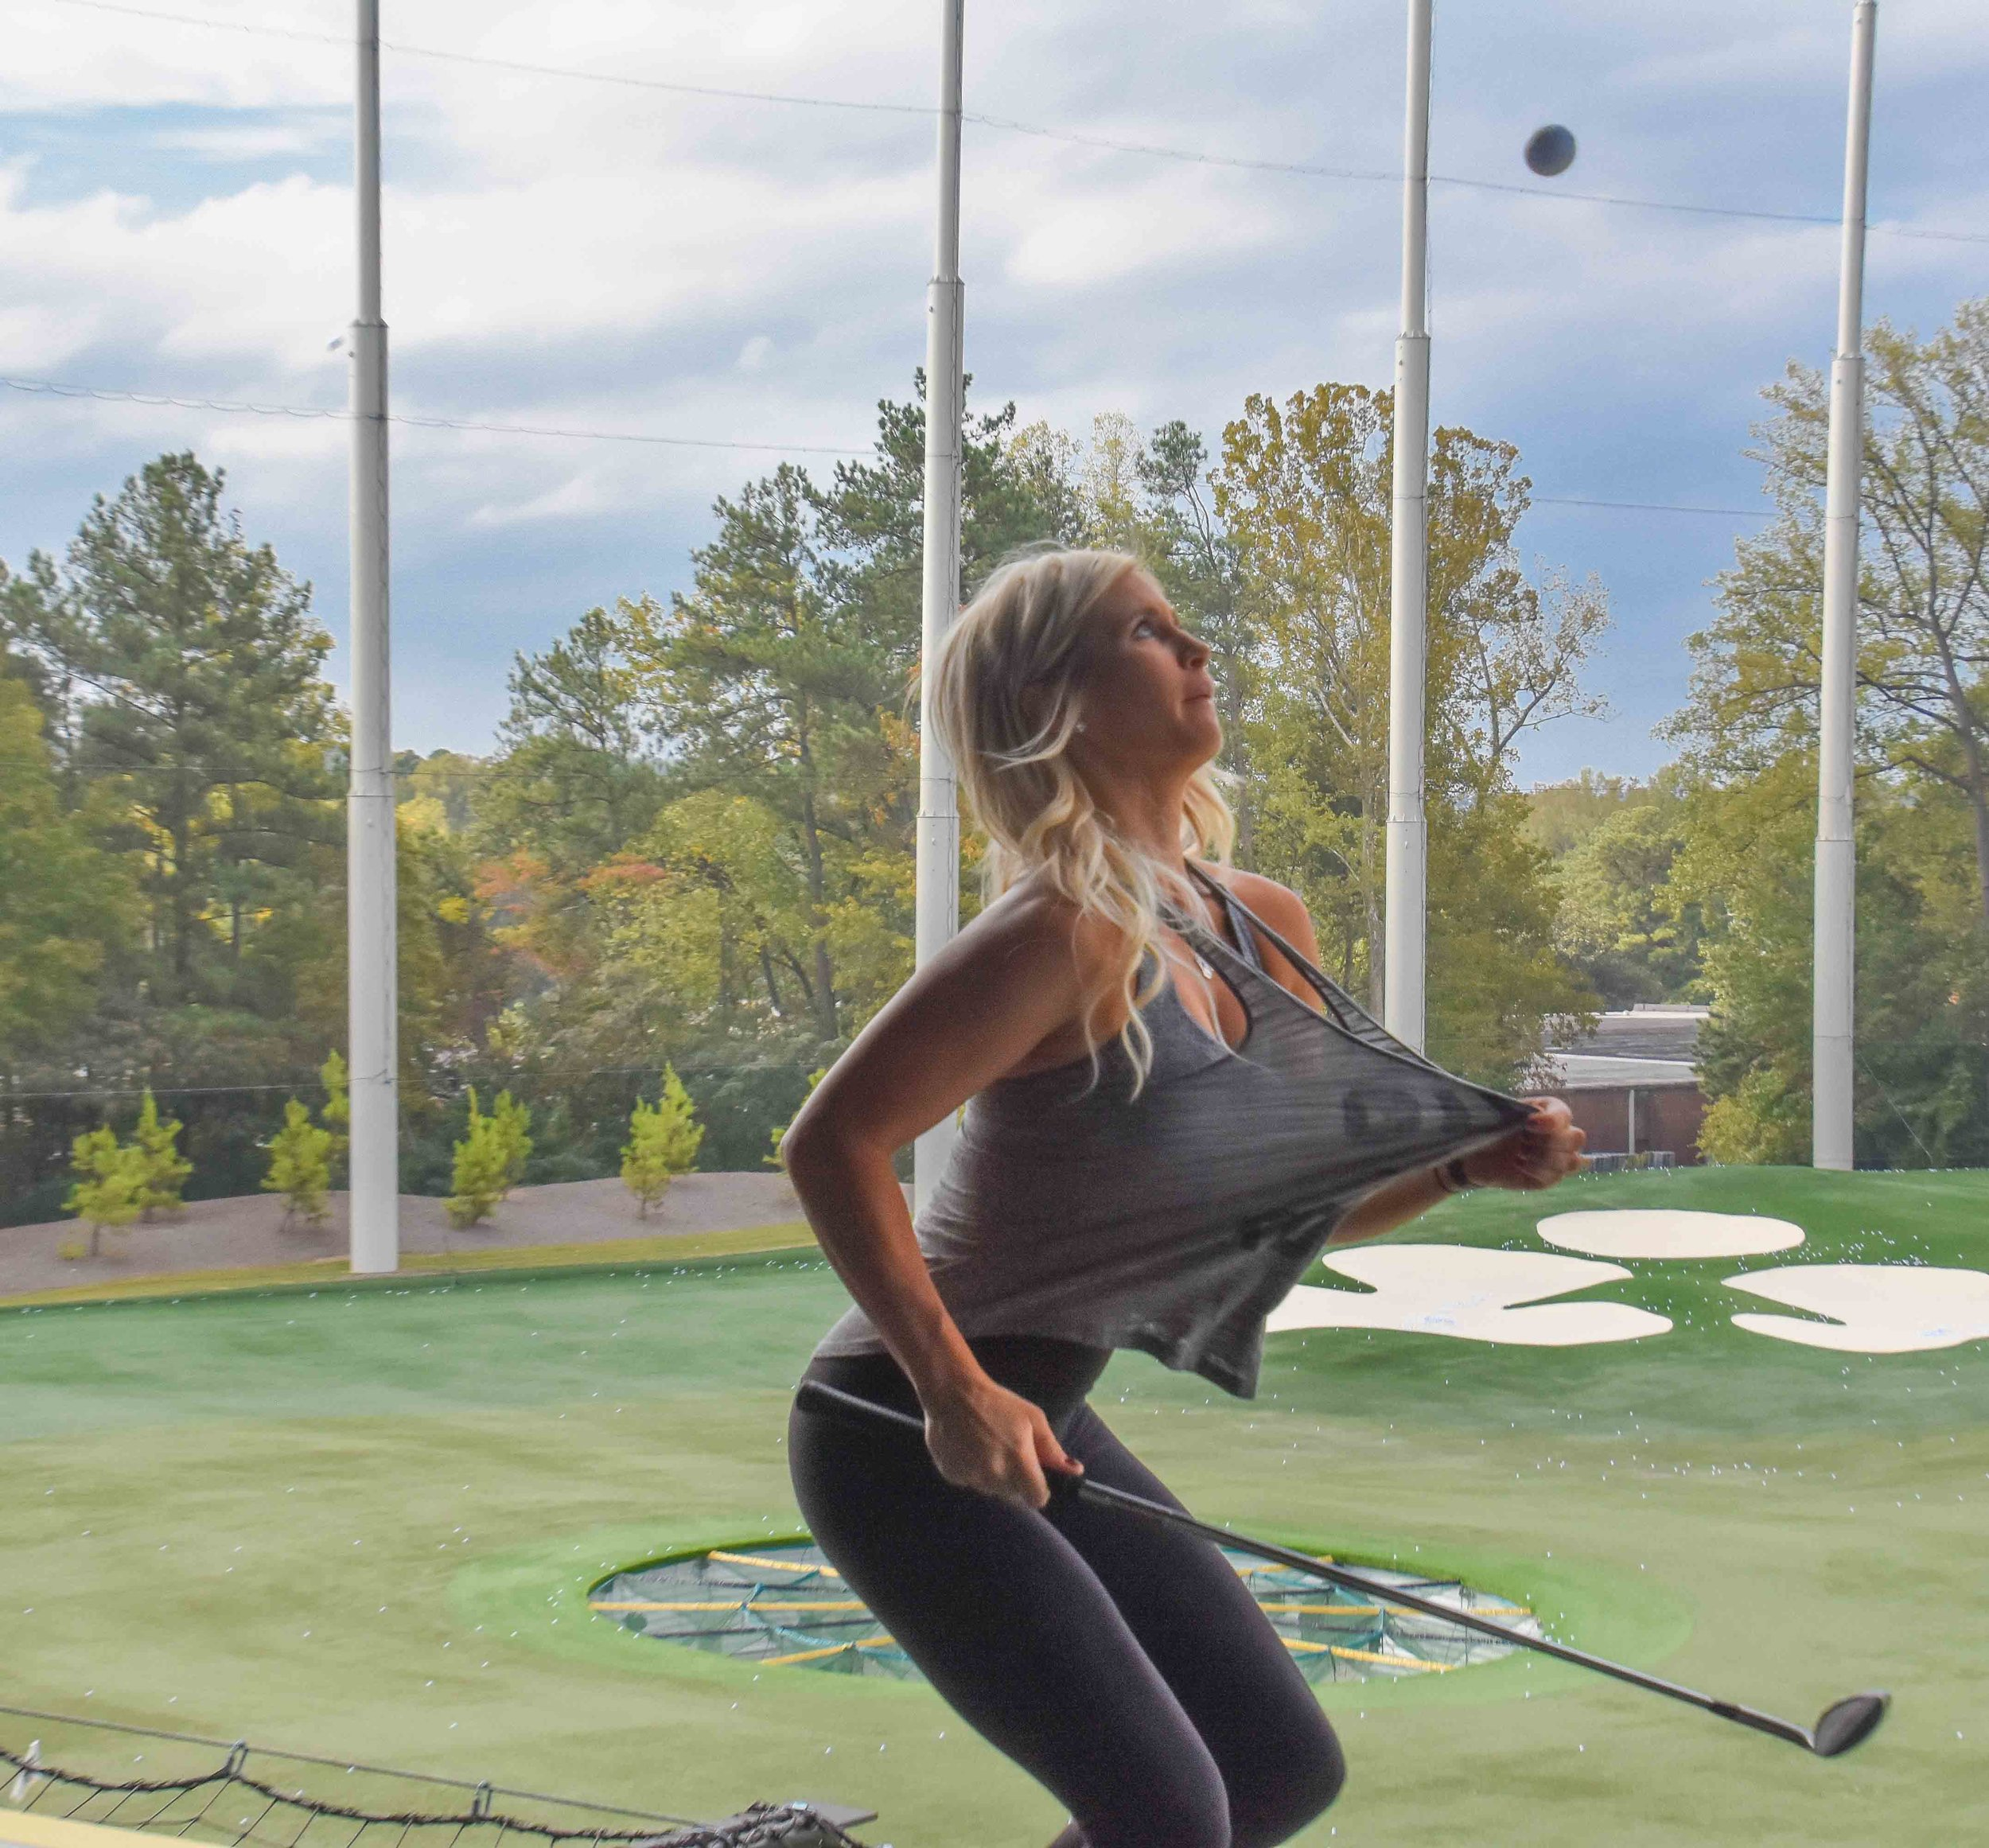 Karin and the gang would warm things up at Atlanta's Top Golf, doing whatever this is.